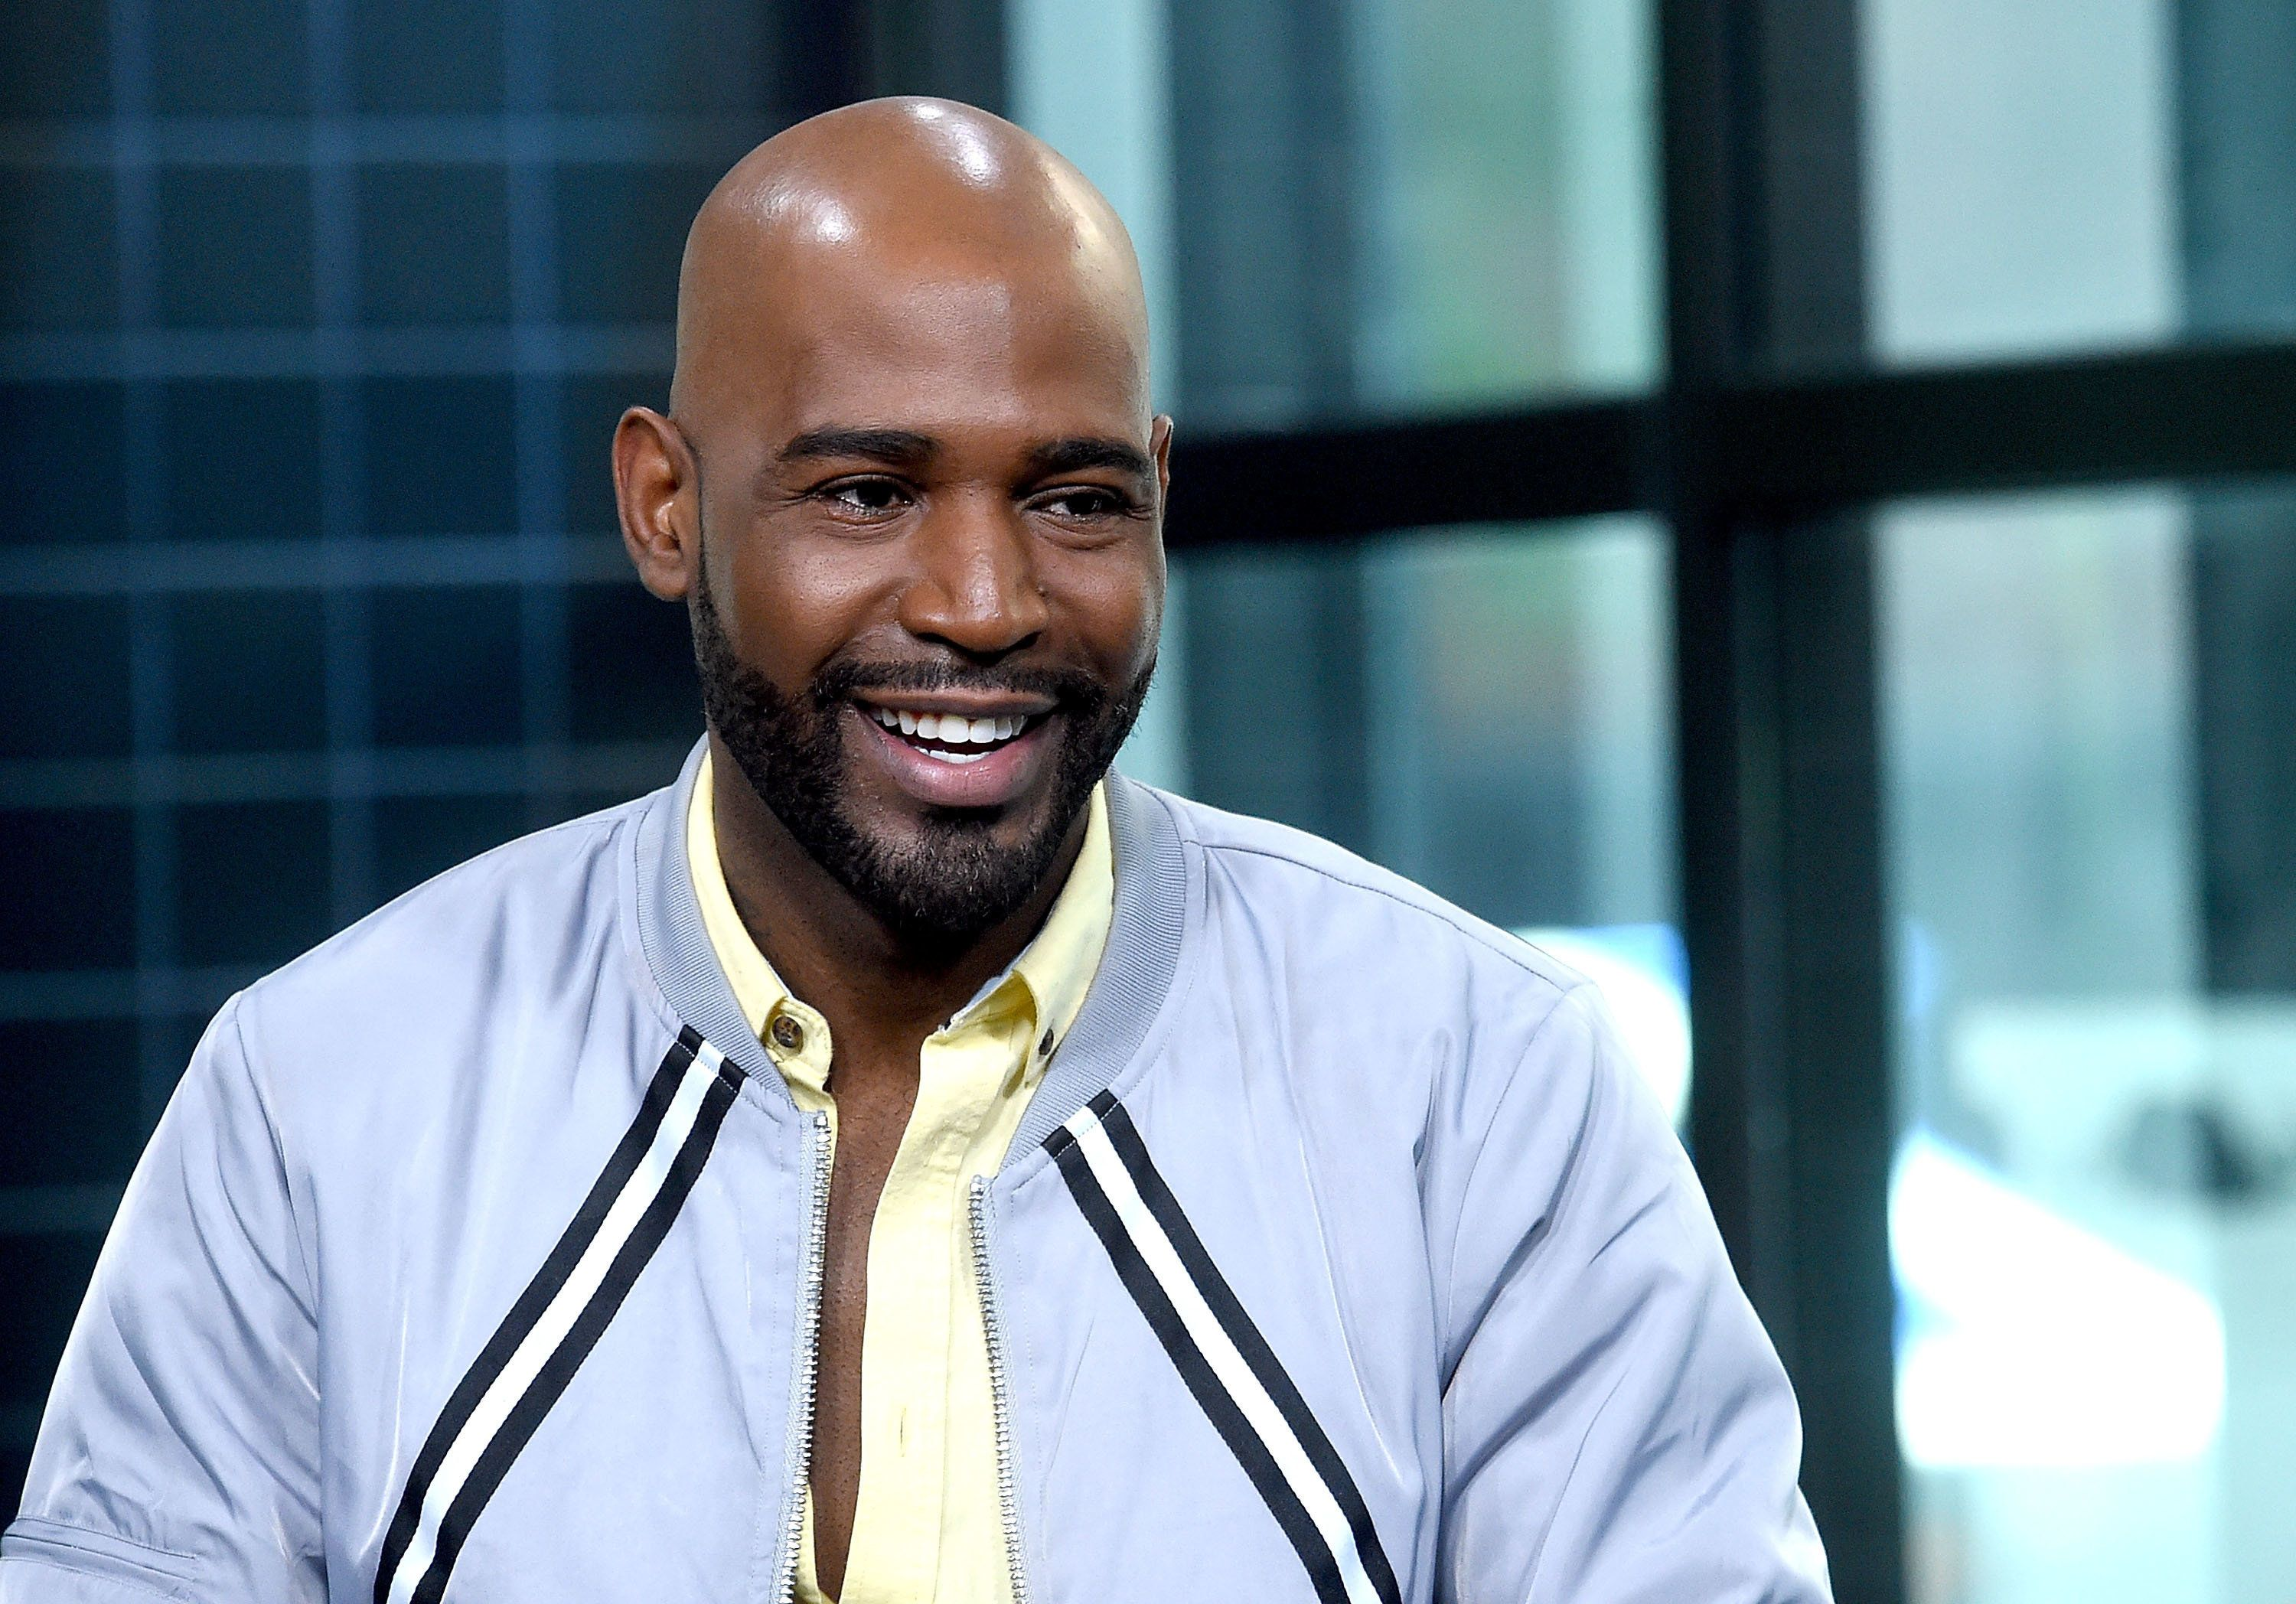 NEW YORK, NY - JUNE 25:  Karamo Brown visits Build Series to discuss his show 'Queer Eye' at Build Studio on June 25, 2018 in New York City.  (Photo by Jamie McCarthy/Getty Images)